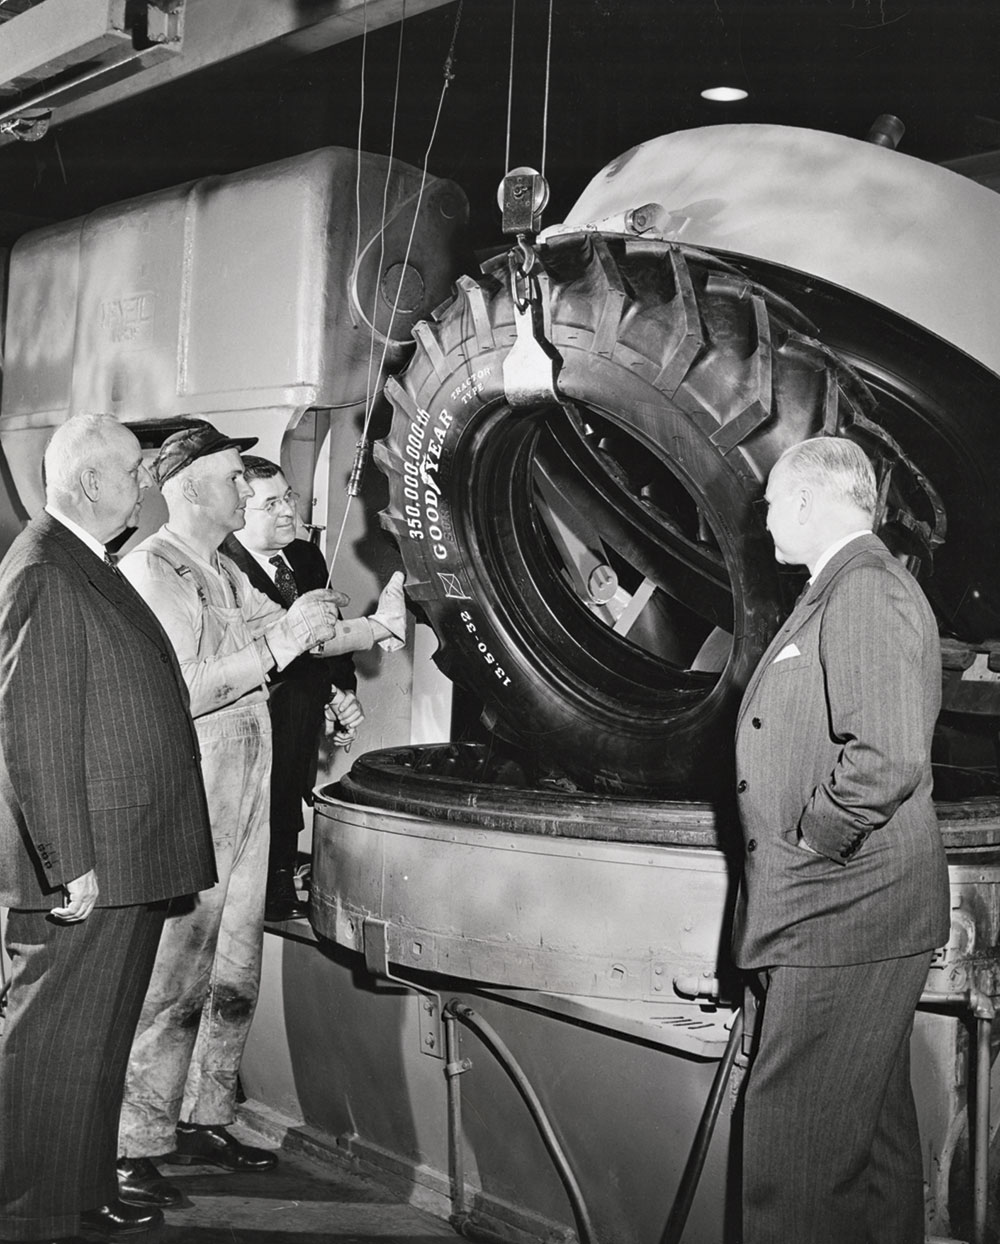 RUBBER MEN: Goodyear Tire and Rubber Co. officials, including board chairman Paul Litchfield (far left) watch the 350,000,000th tire taken from the vulcanizer in the company tire room, 1943.